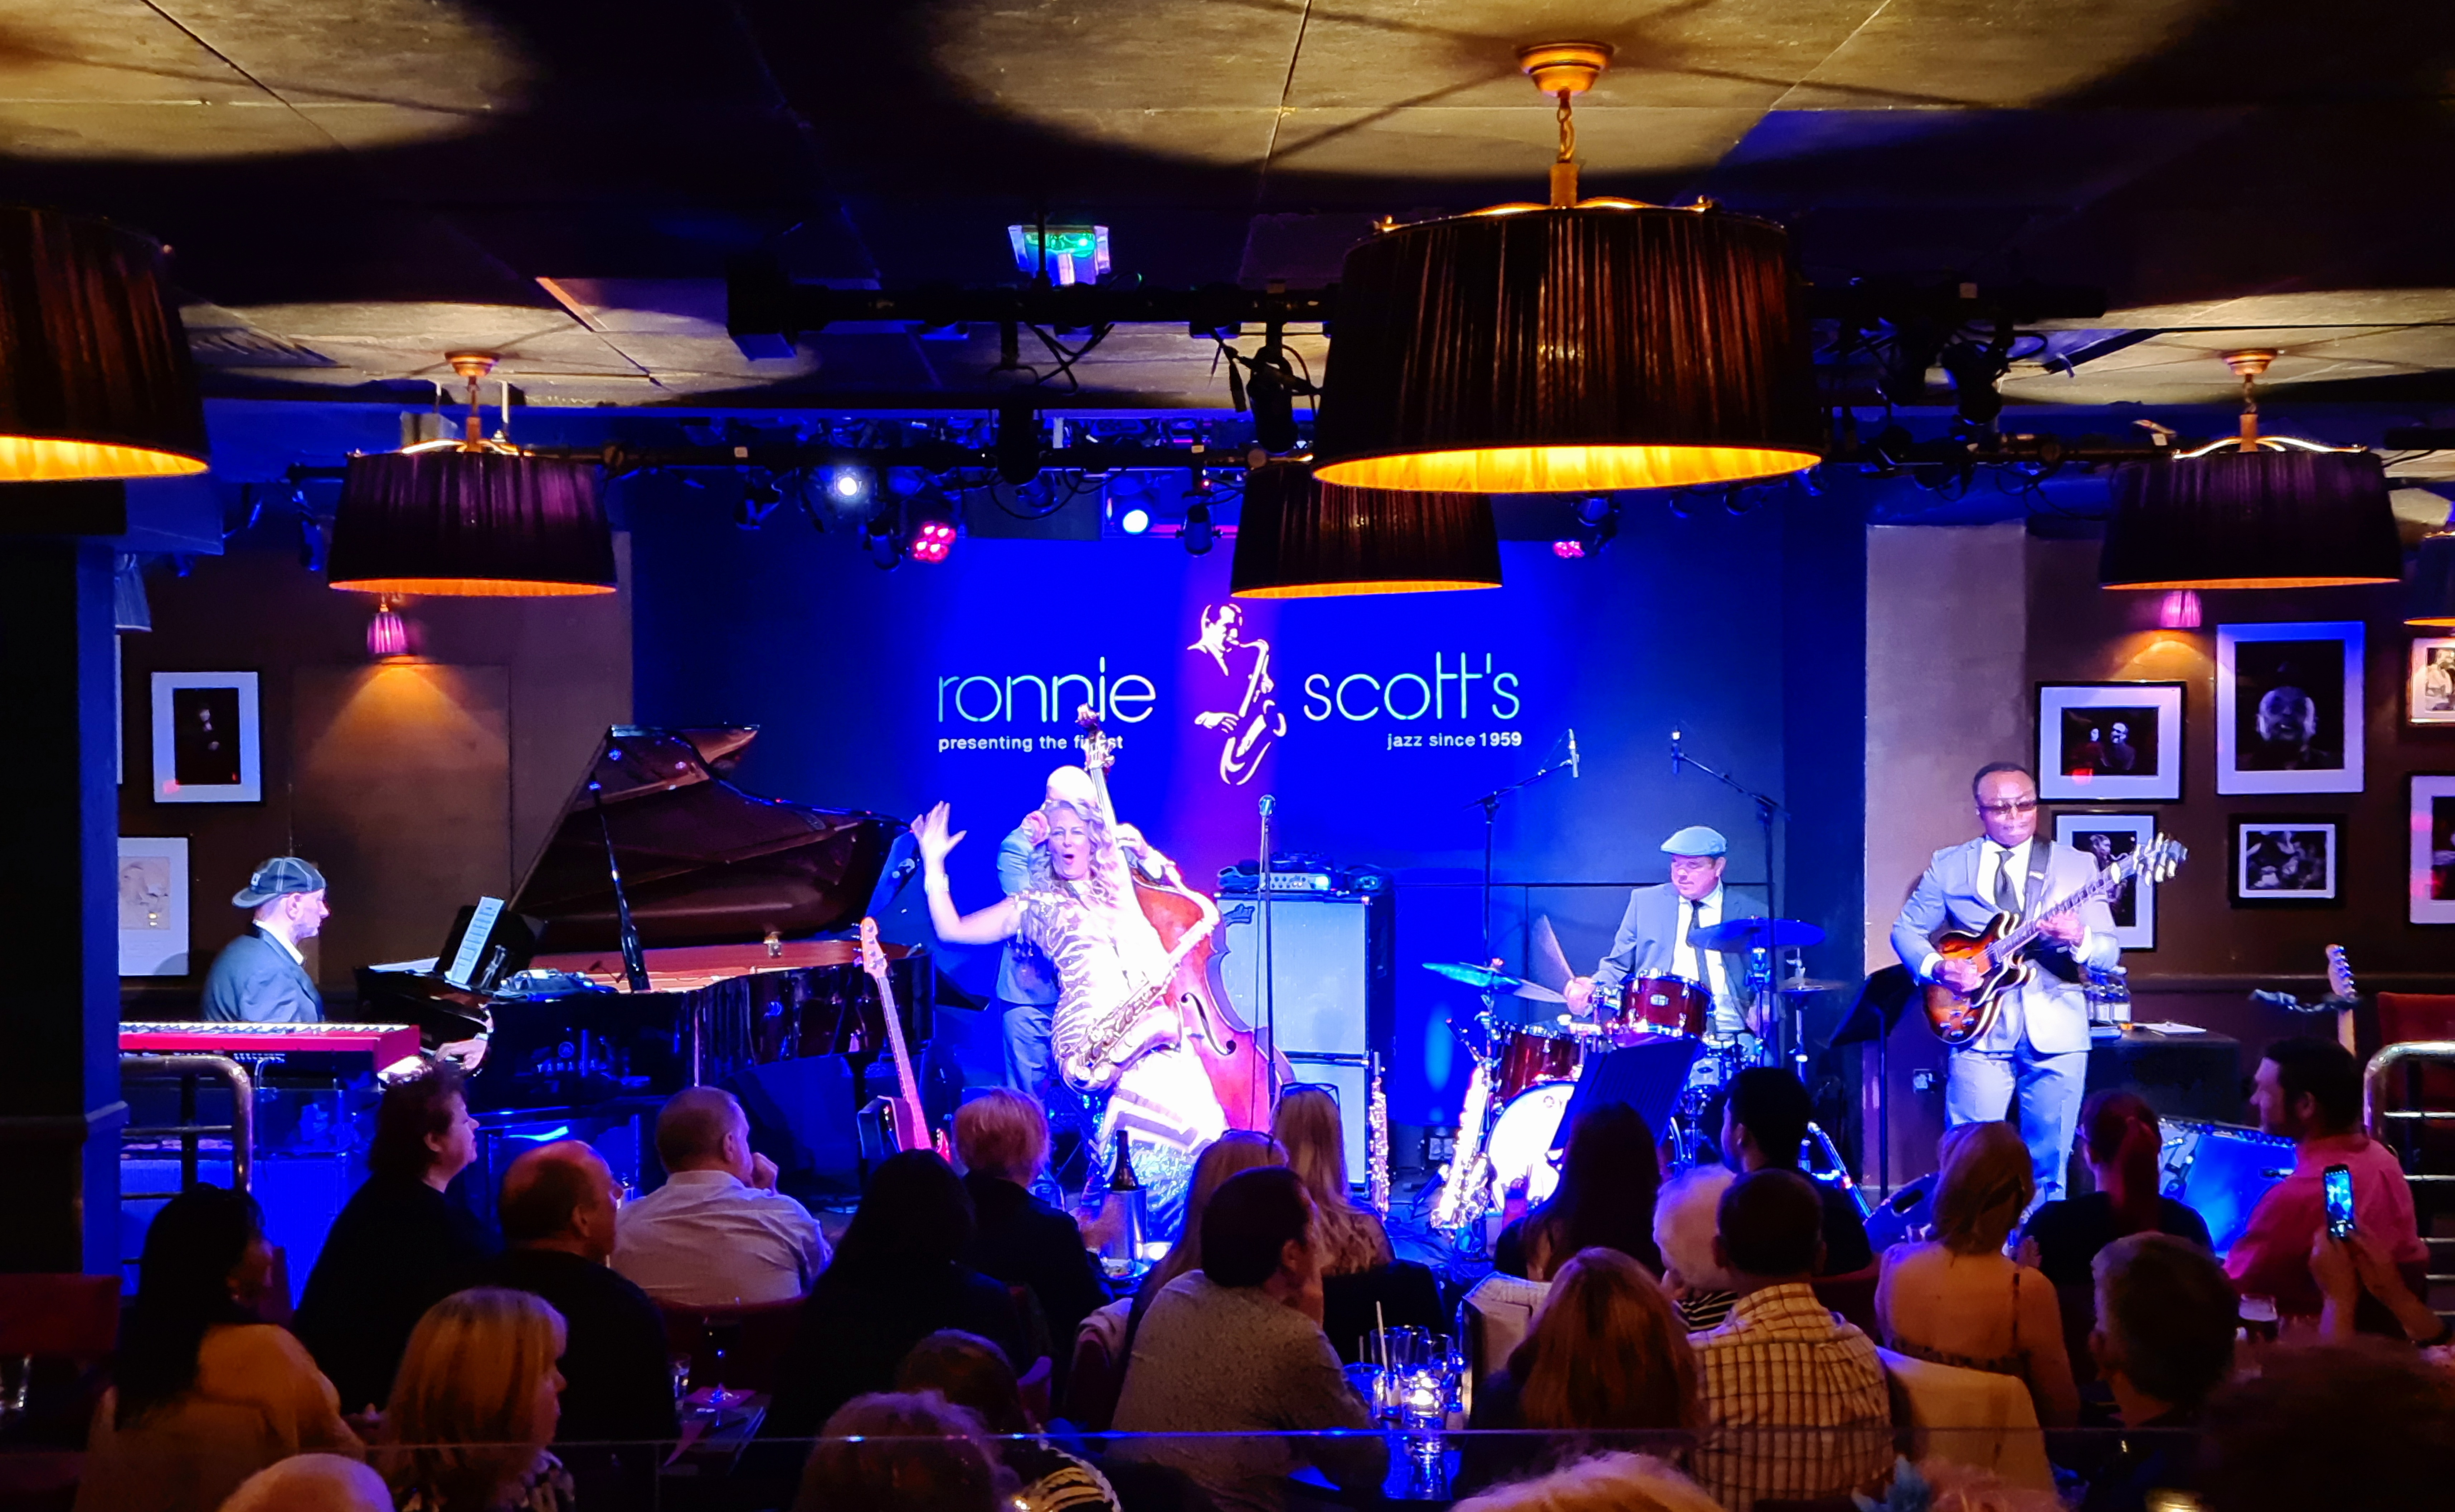 On stage at Ronnie Scott's